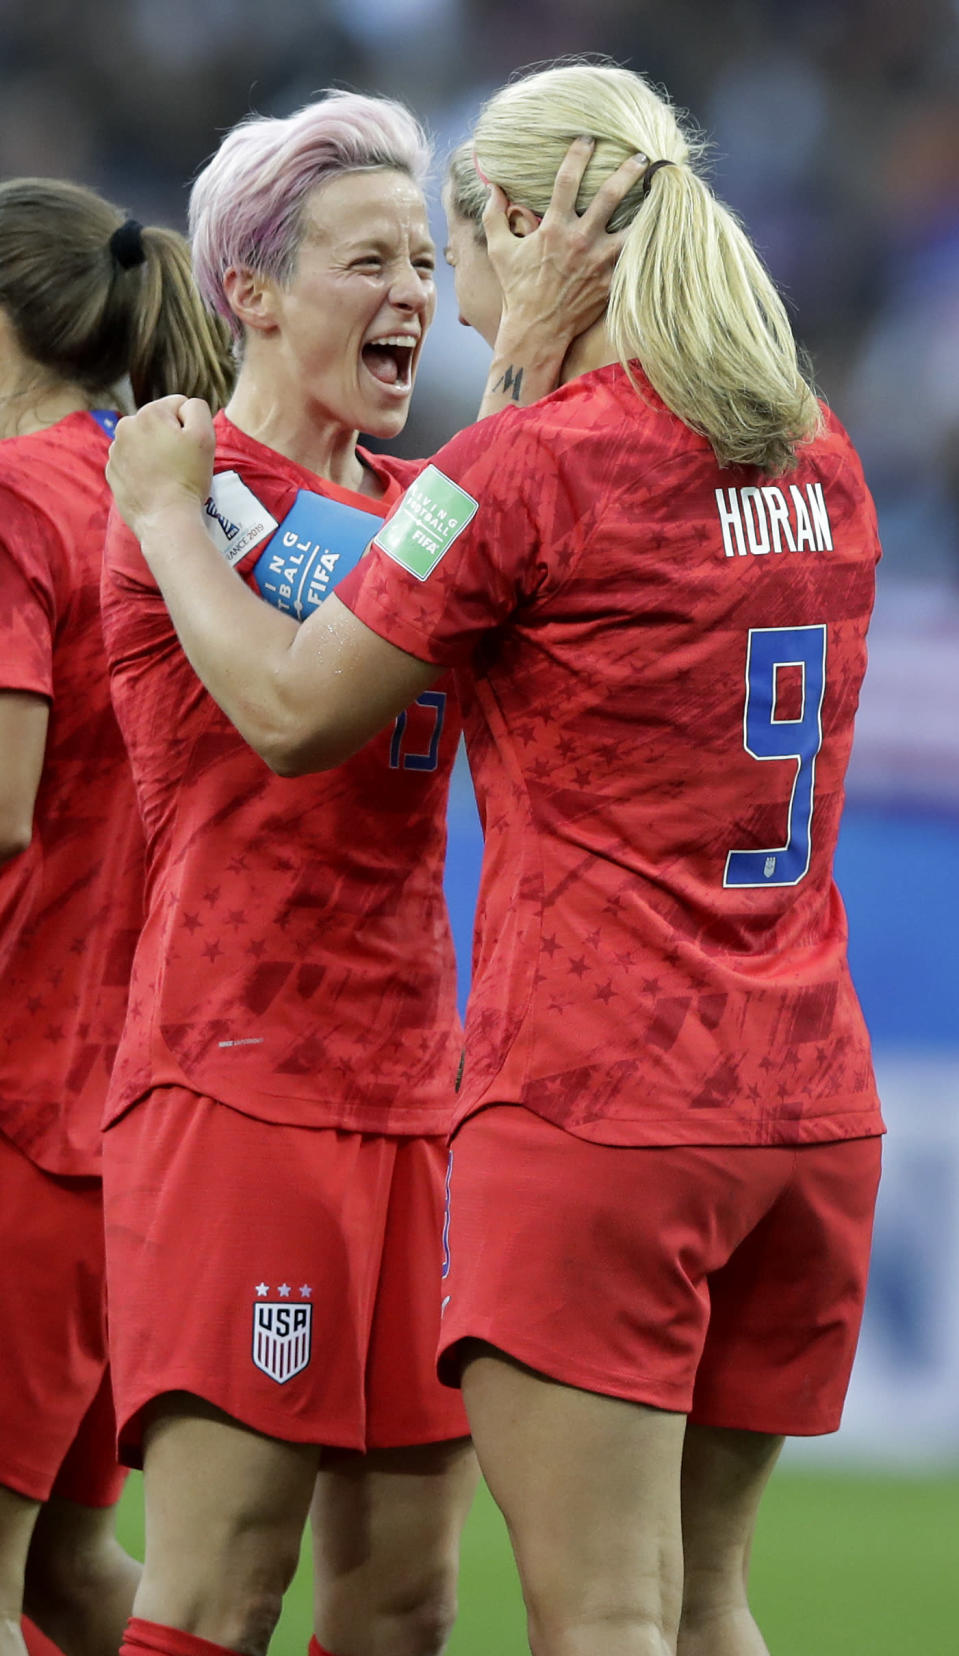 United States' scorer Lindsey Horan, right, and her teammate Megan Rapinoe, left, celebrate their side's 3rd goal during the Women's World Cup Group F soccer match between United States and Thailand at the Stade Auguste-Delaune in Reims, France, Tuesday, June 11, 2019. (AP Photo/Alessandra Tarantino)